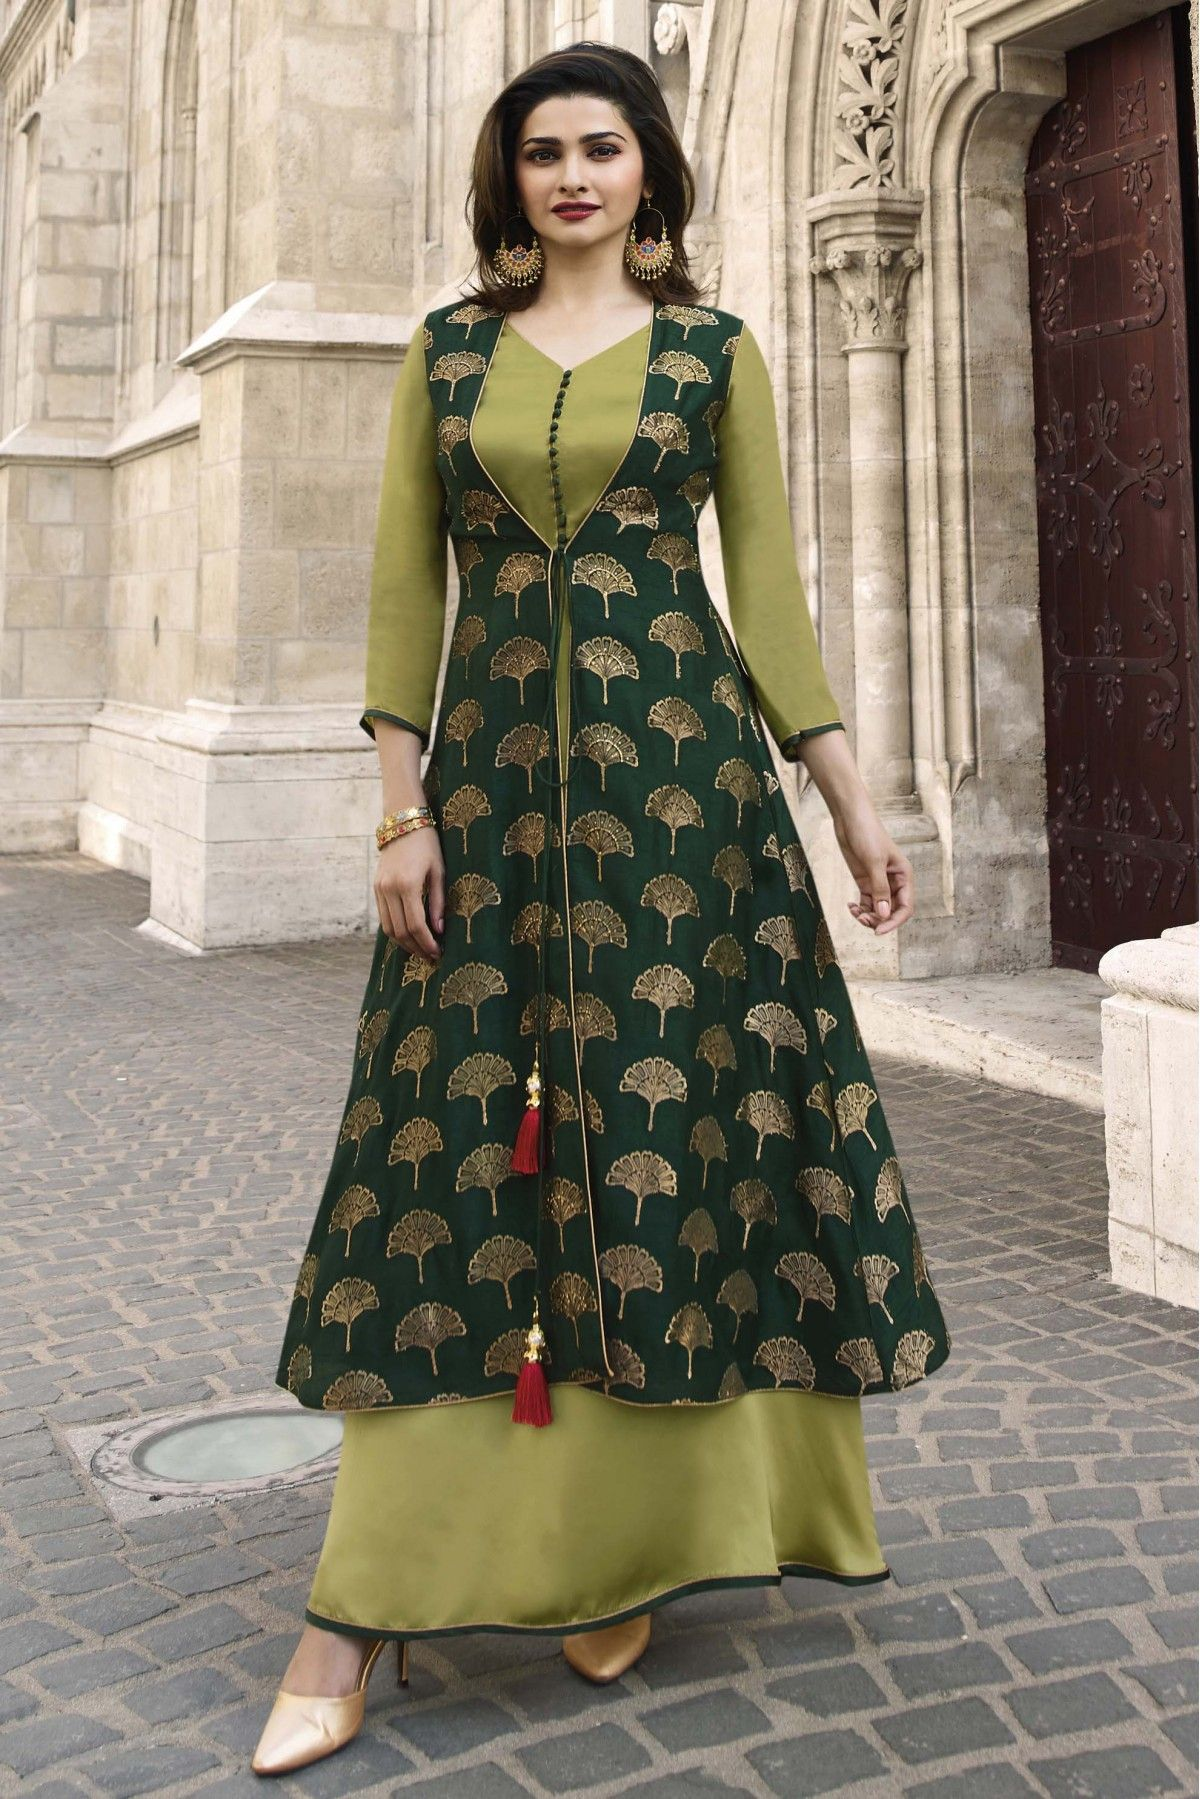 2960307a1a This Banarasi Jacquard And Satin Green Colour Kurti Is The Fun Attire Of  The Moment. Get It On and Style It With Handbag and Earrings For The  Perfect Day ...